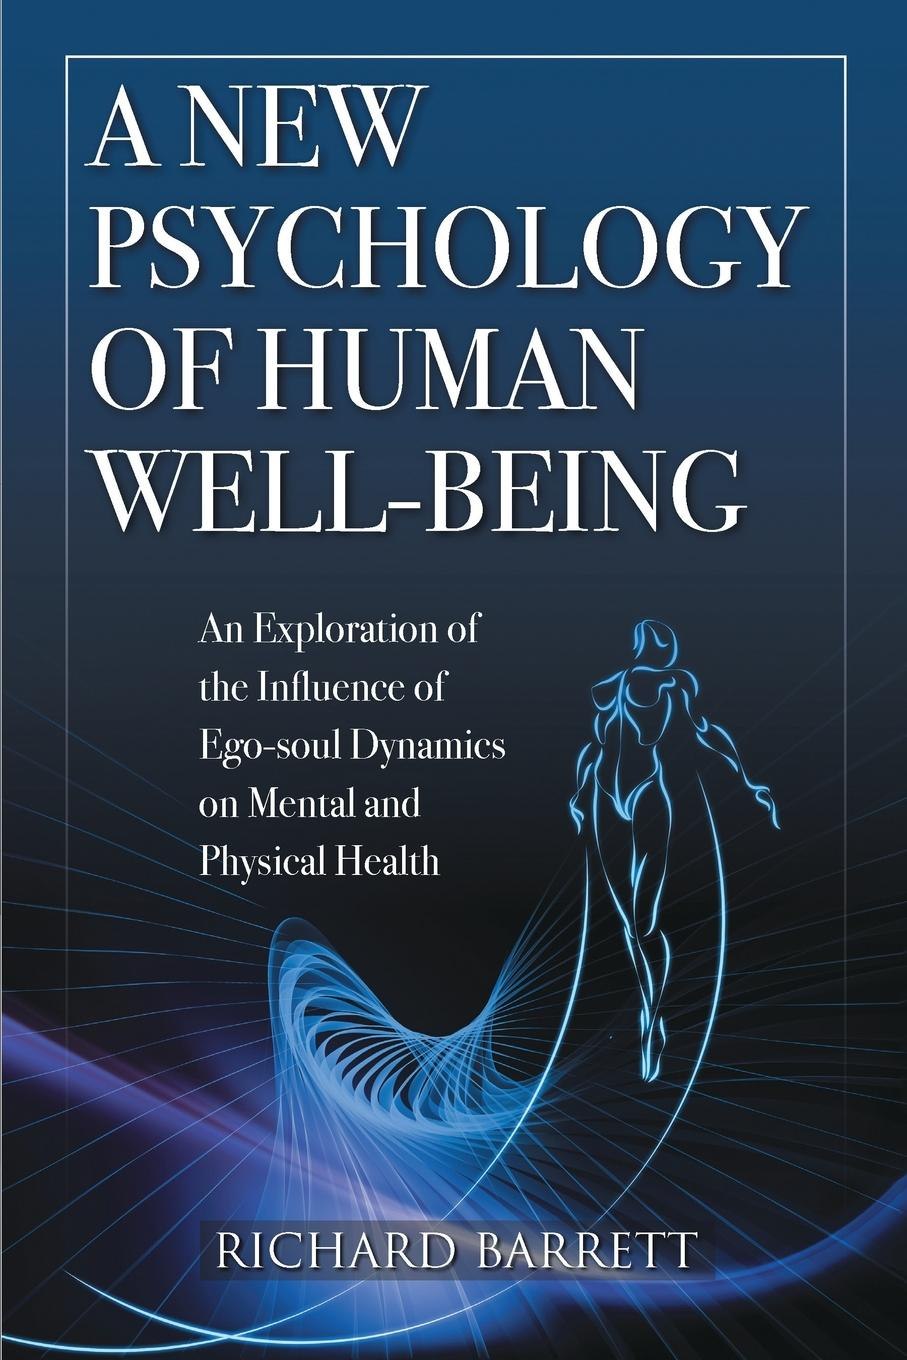 Richard Barrett A New Psychology of Human Well-Being. An Exploration of the Influence of Ego-Soul Dynamics on Mental and Physical Health olga b a van den akker reproductive health psychology